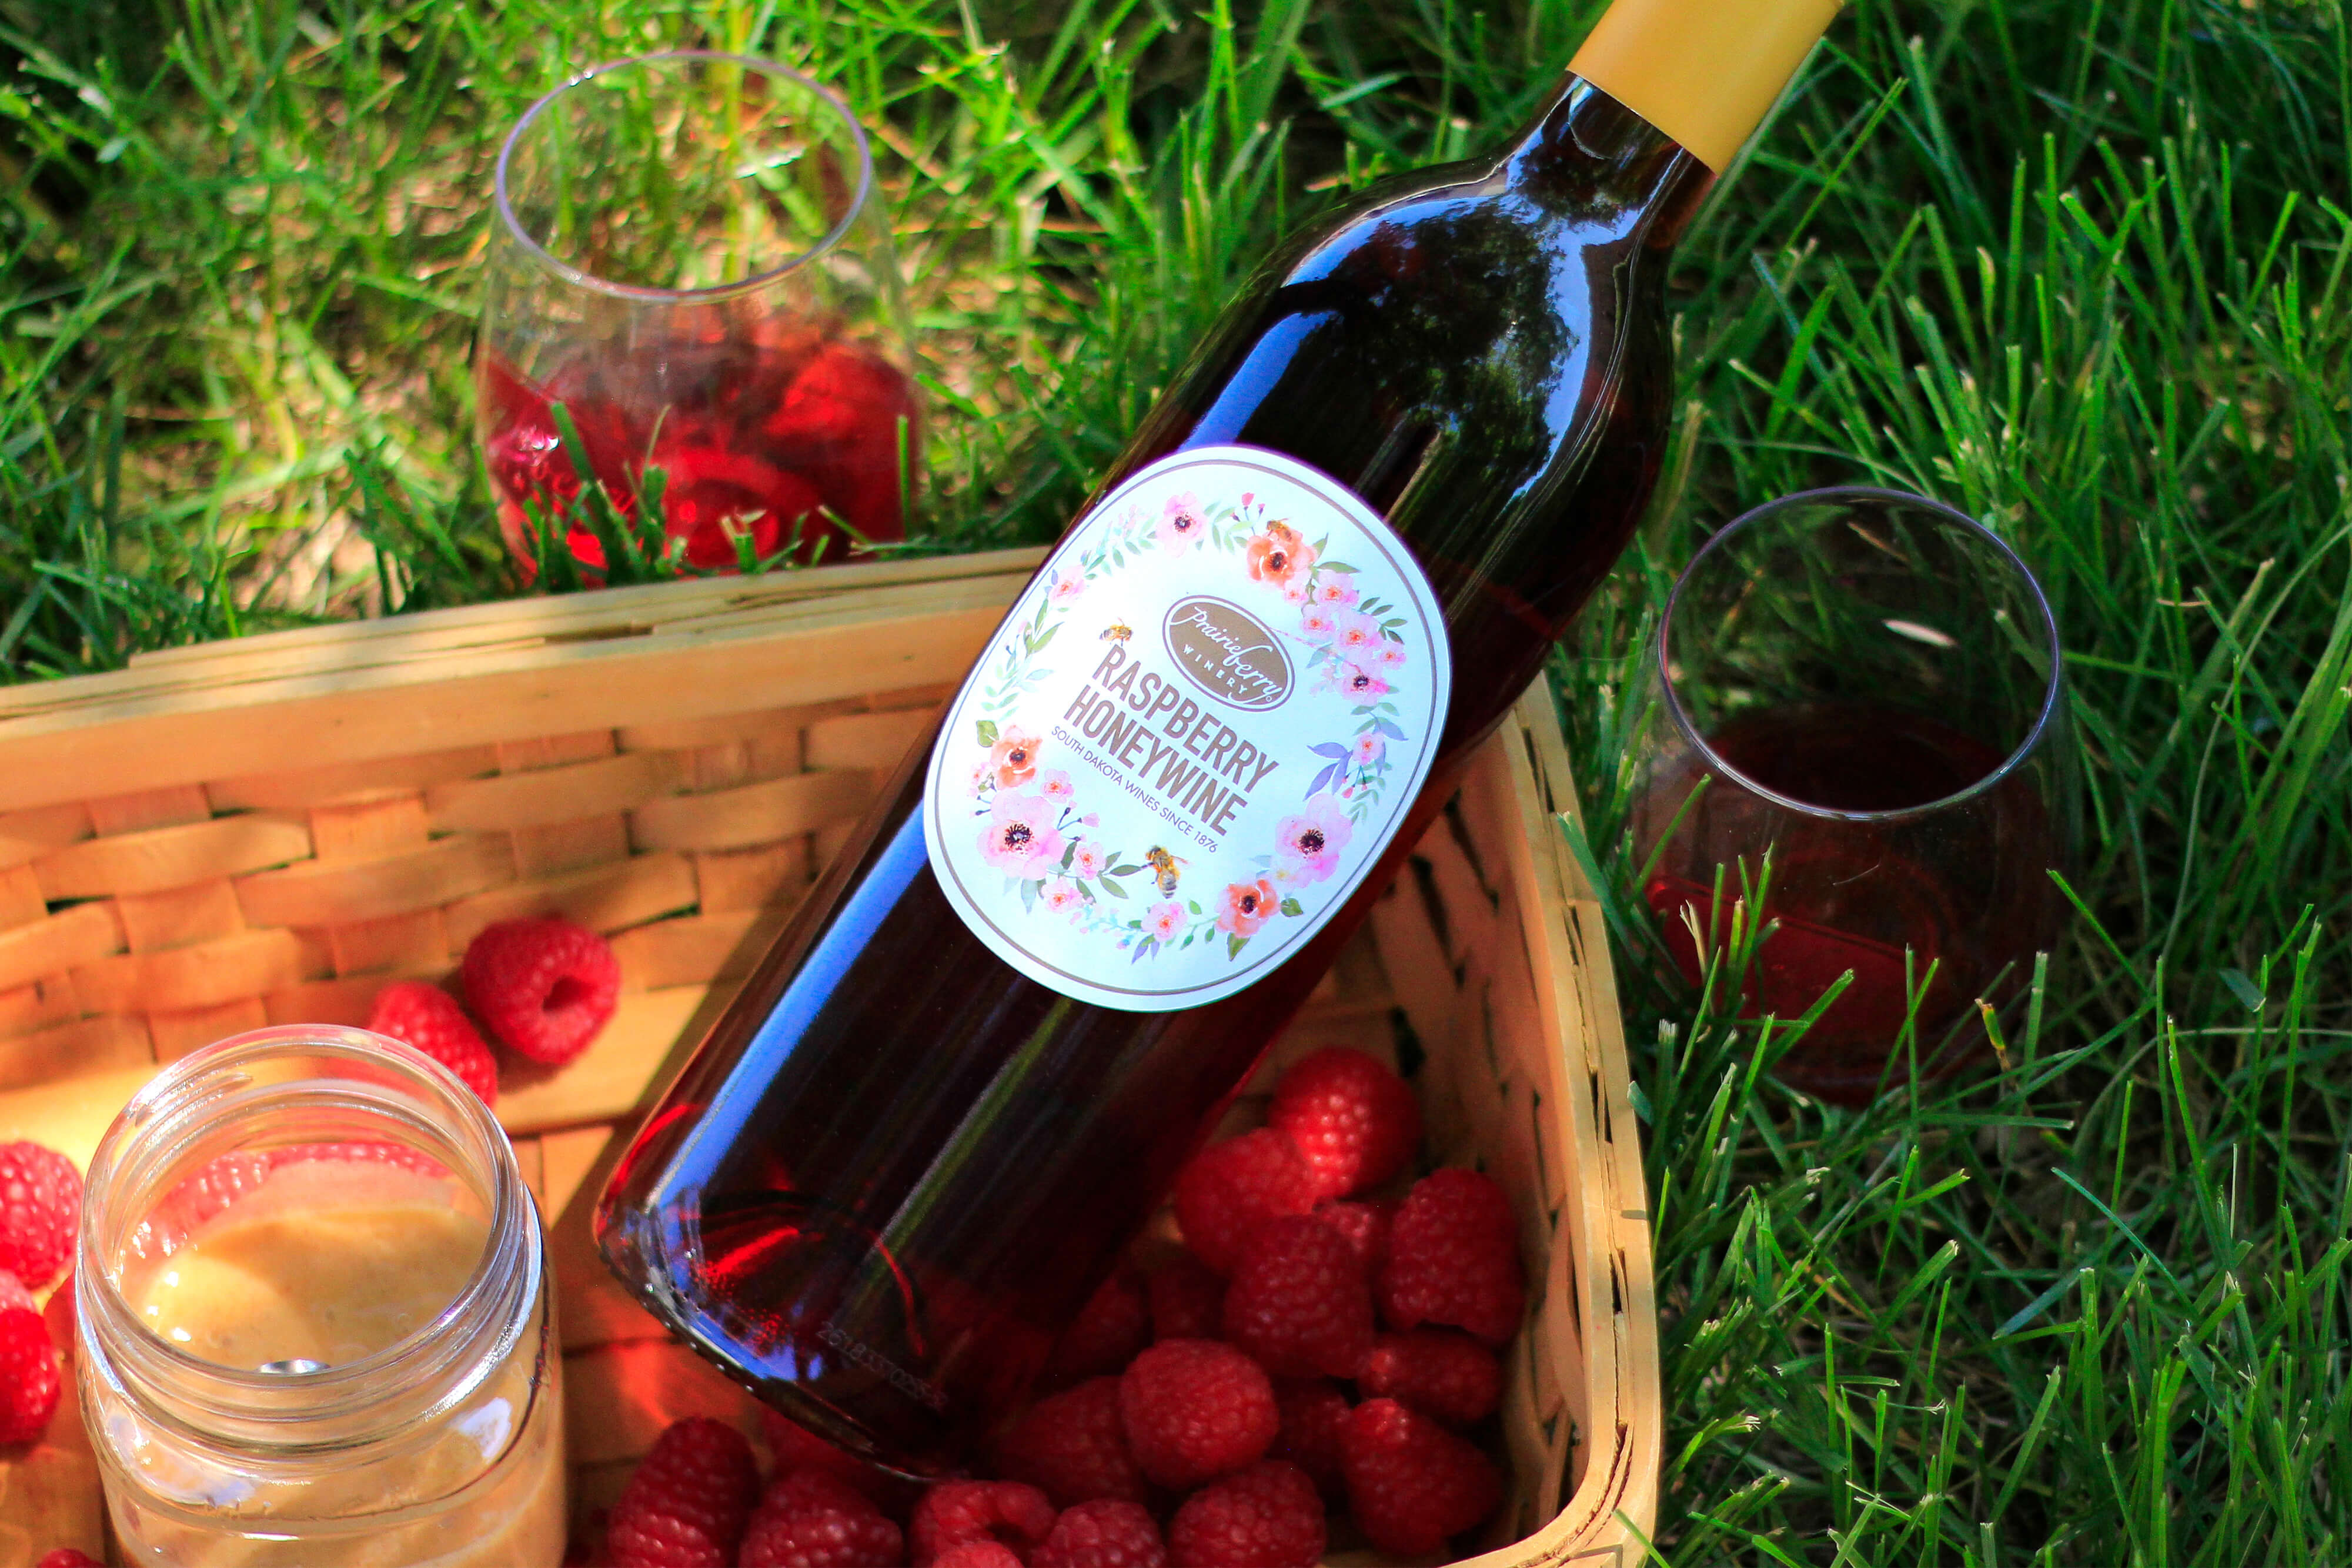 Raspberry Honeywine by Prairie Berry Winery is the best the bees have to offer, with the raspberries and South Dakota honey.